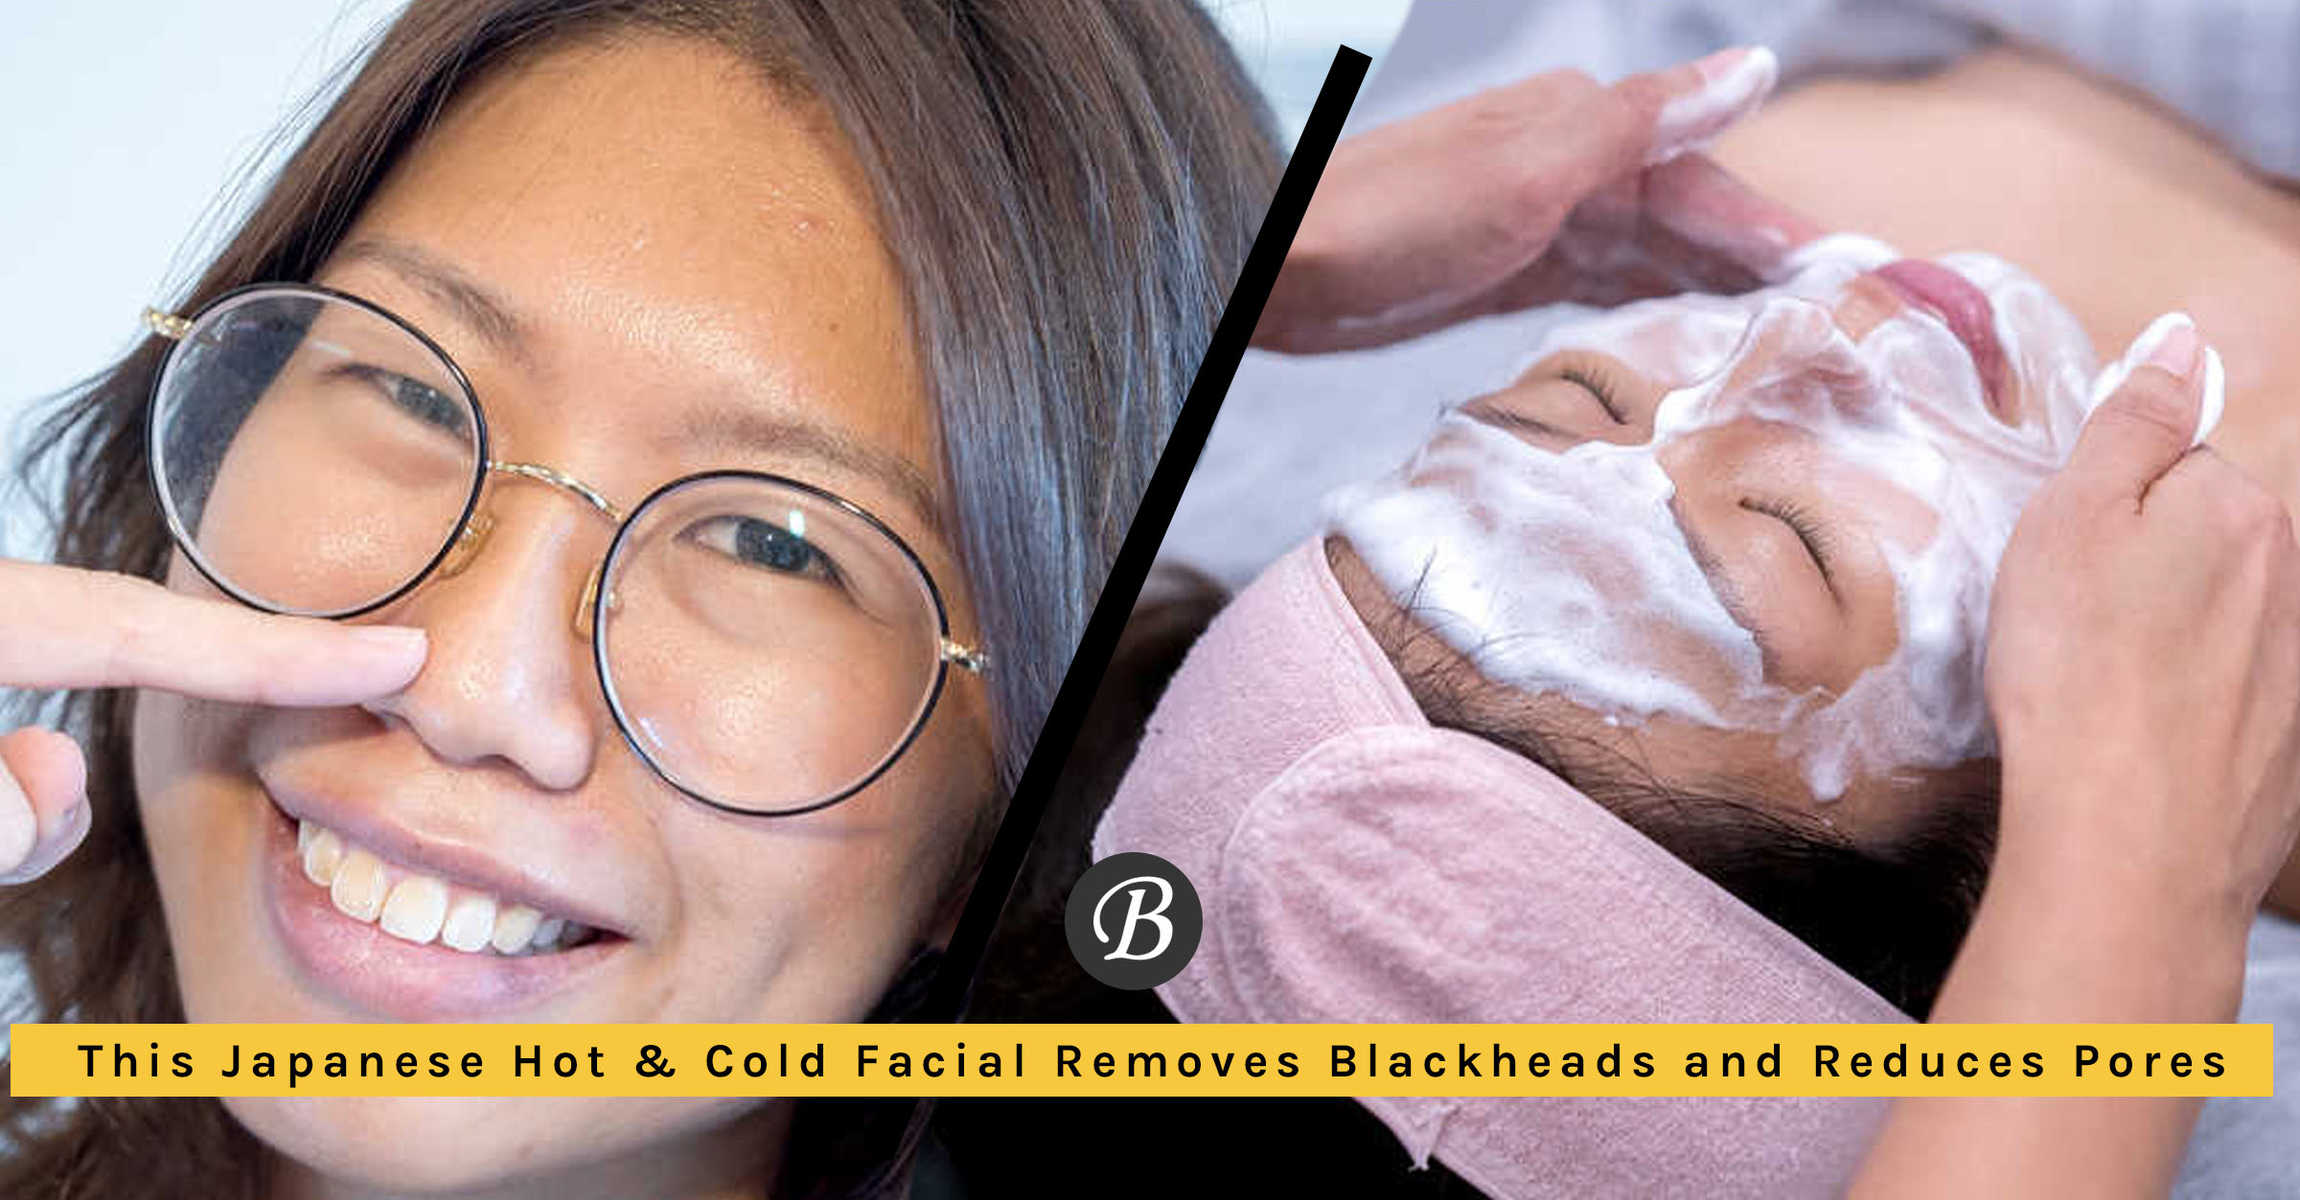 This Hot And Cold Japanese Facial Helps To Remove Blackheads Without Extraction